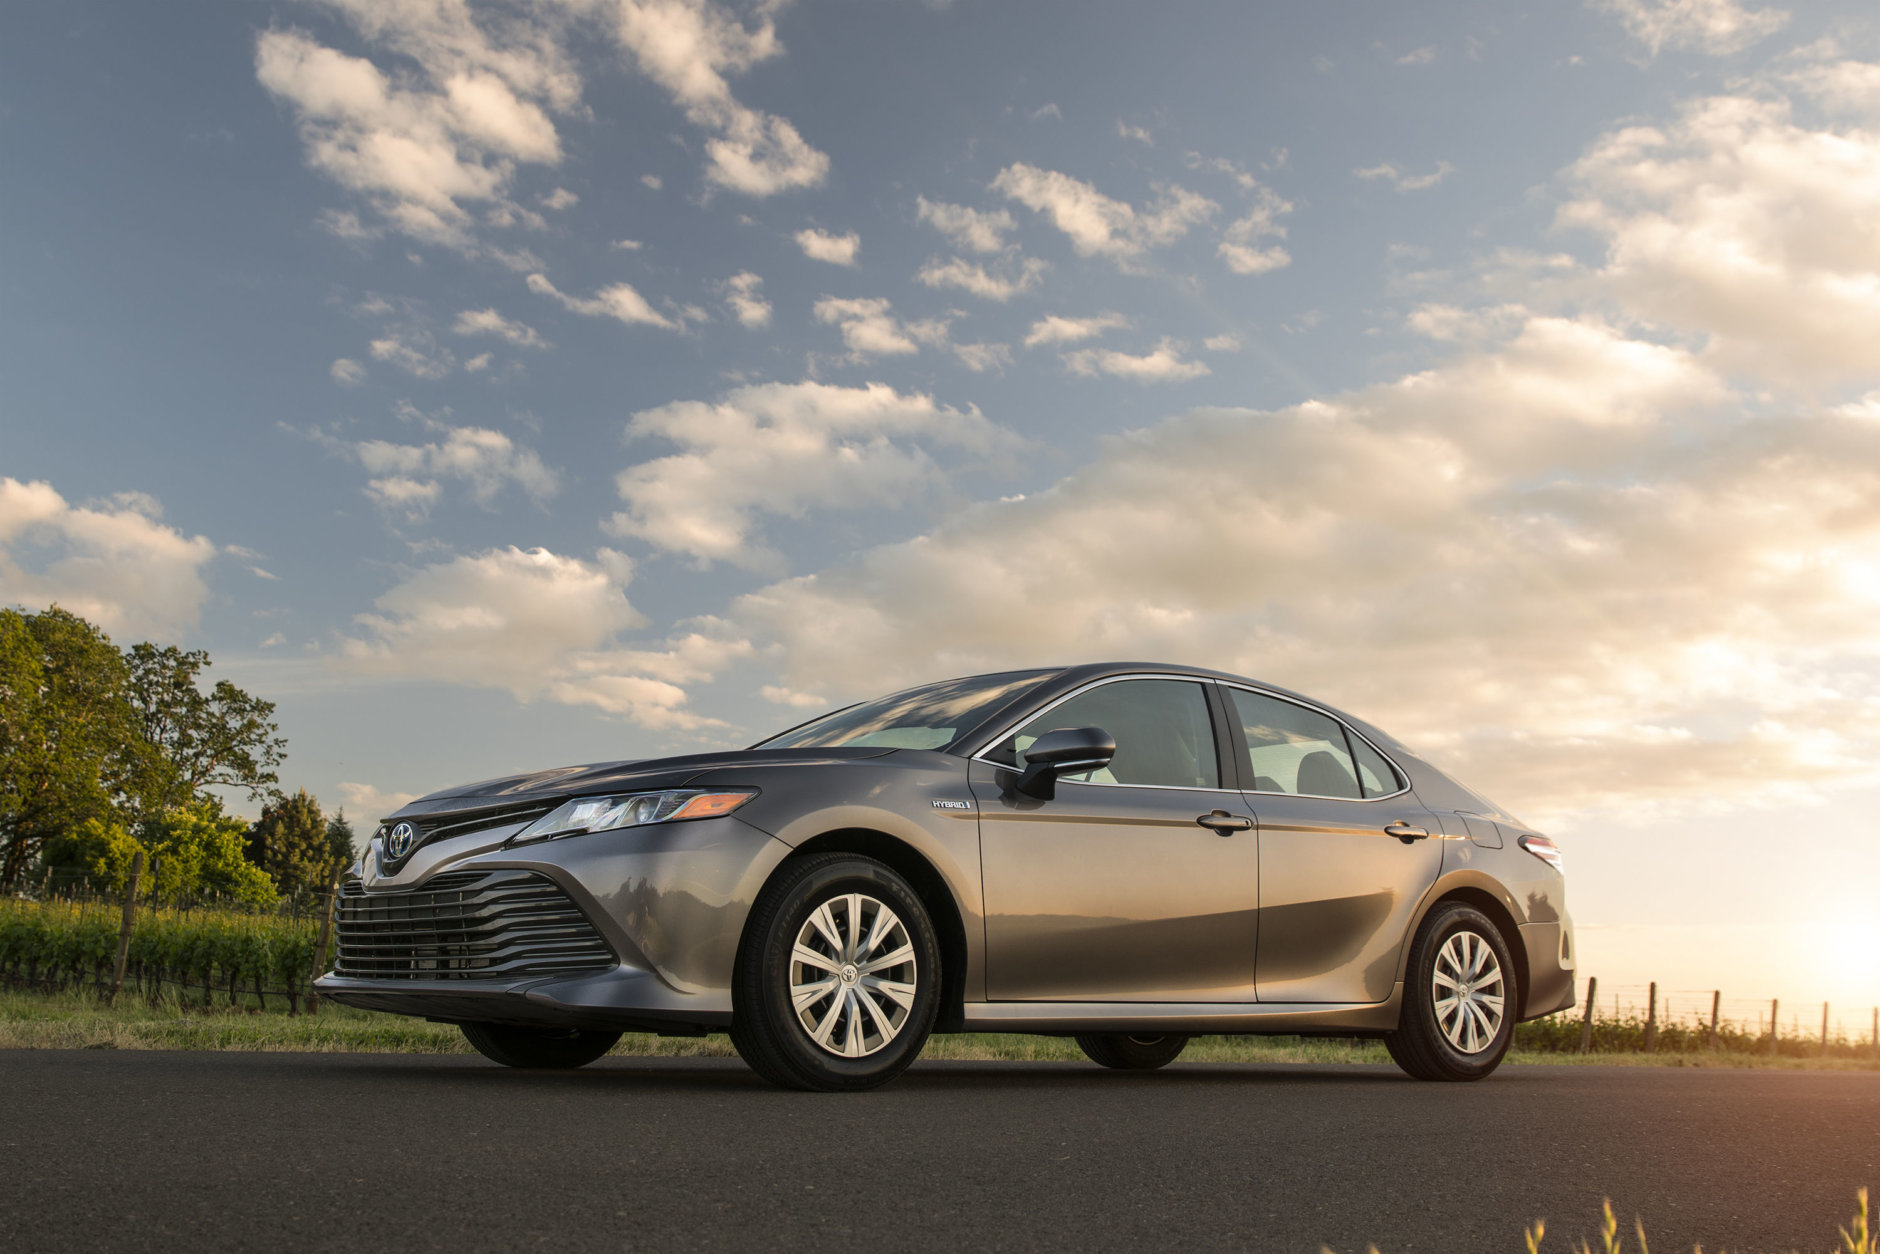 Best New Car for Teens $35,000 to $40,000:  The 2018 Toyota Camry Hybrid  (Courtesy Toyota Motor Sales USA)